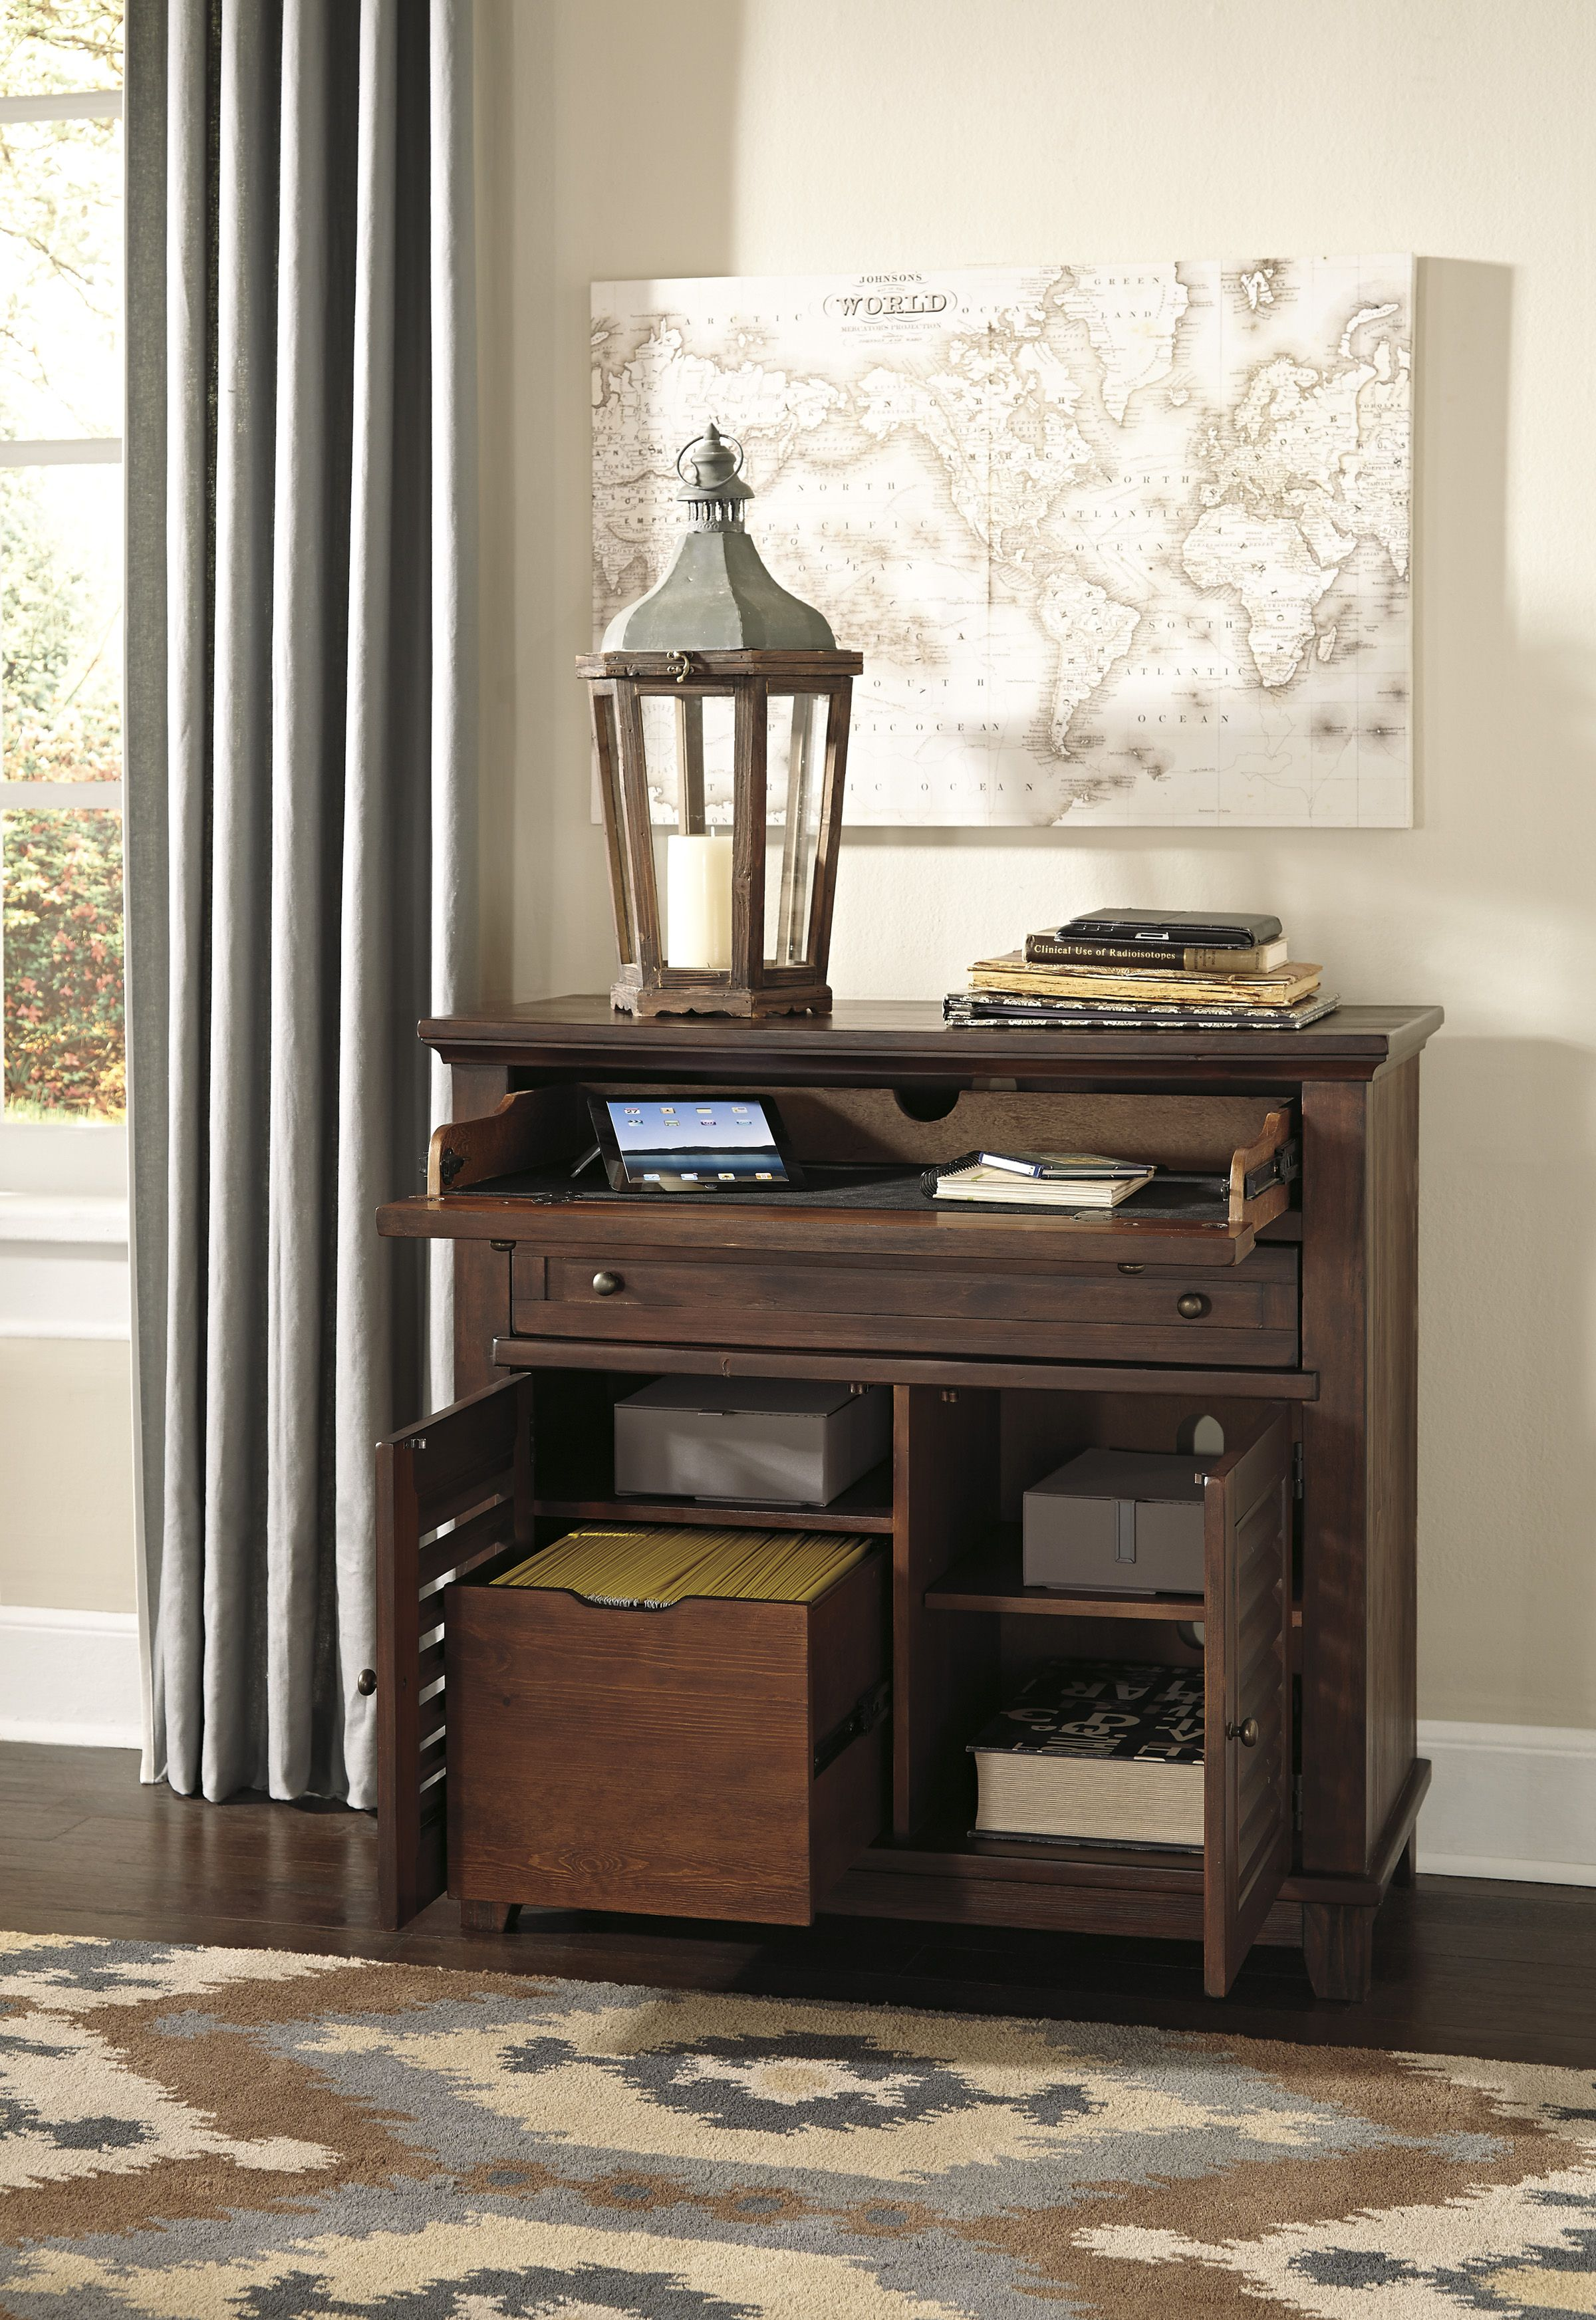 Space saving hallway furniture  Clever hidden desk fits in bedrooms family rooms even hallways